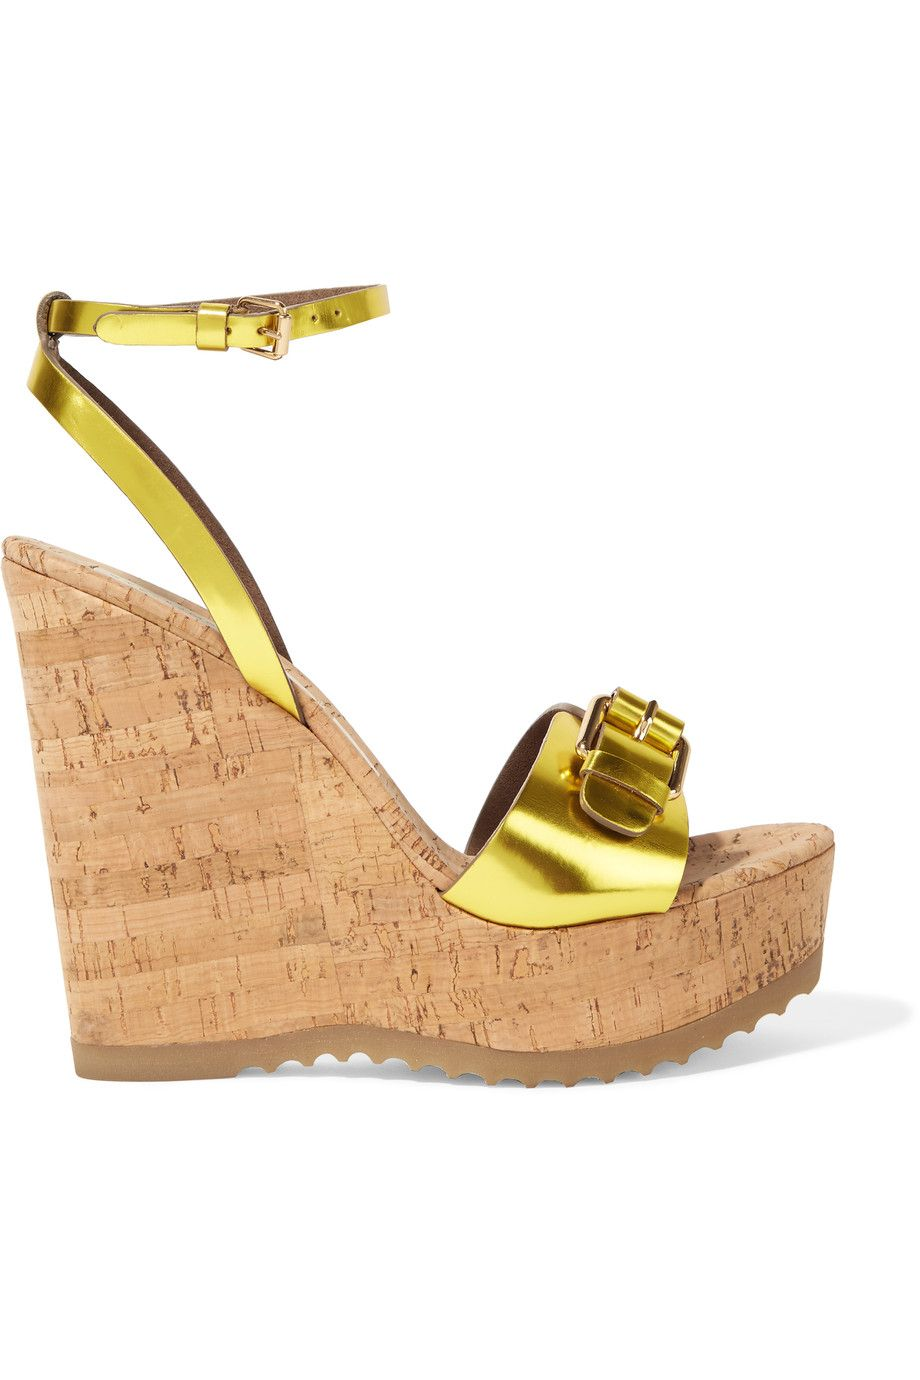 STELLA MCCARTNEY Faux Metallic Patent-Leather And Cork Wedge Sandals.   stellamccartney  shoes  sandals ba689b403d3